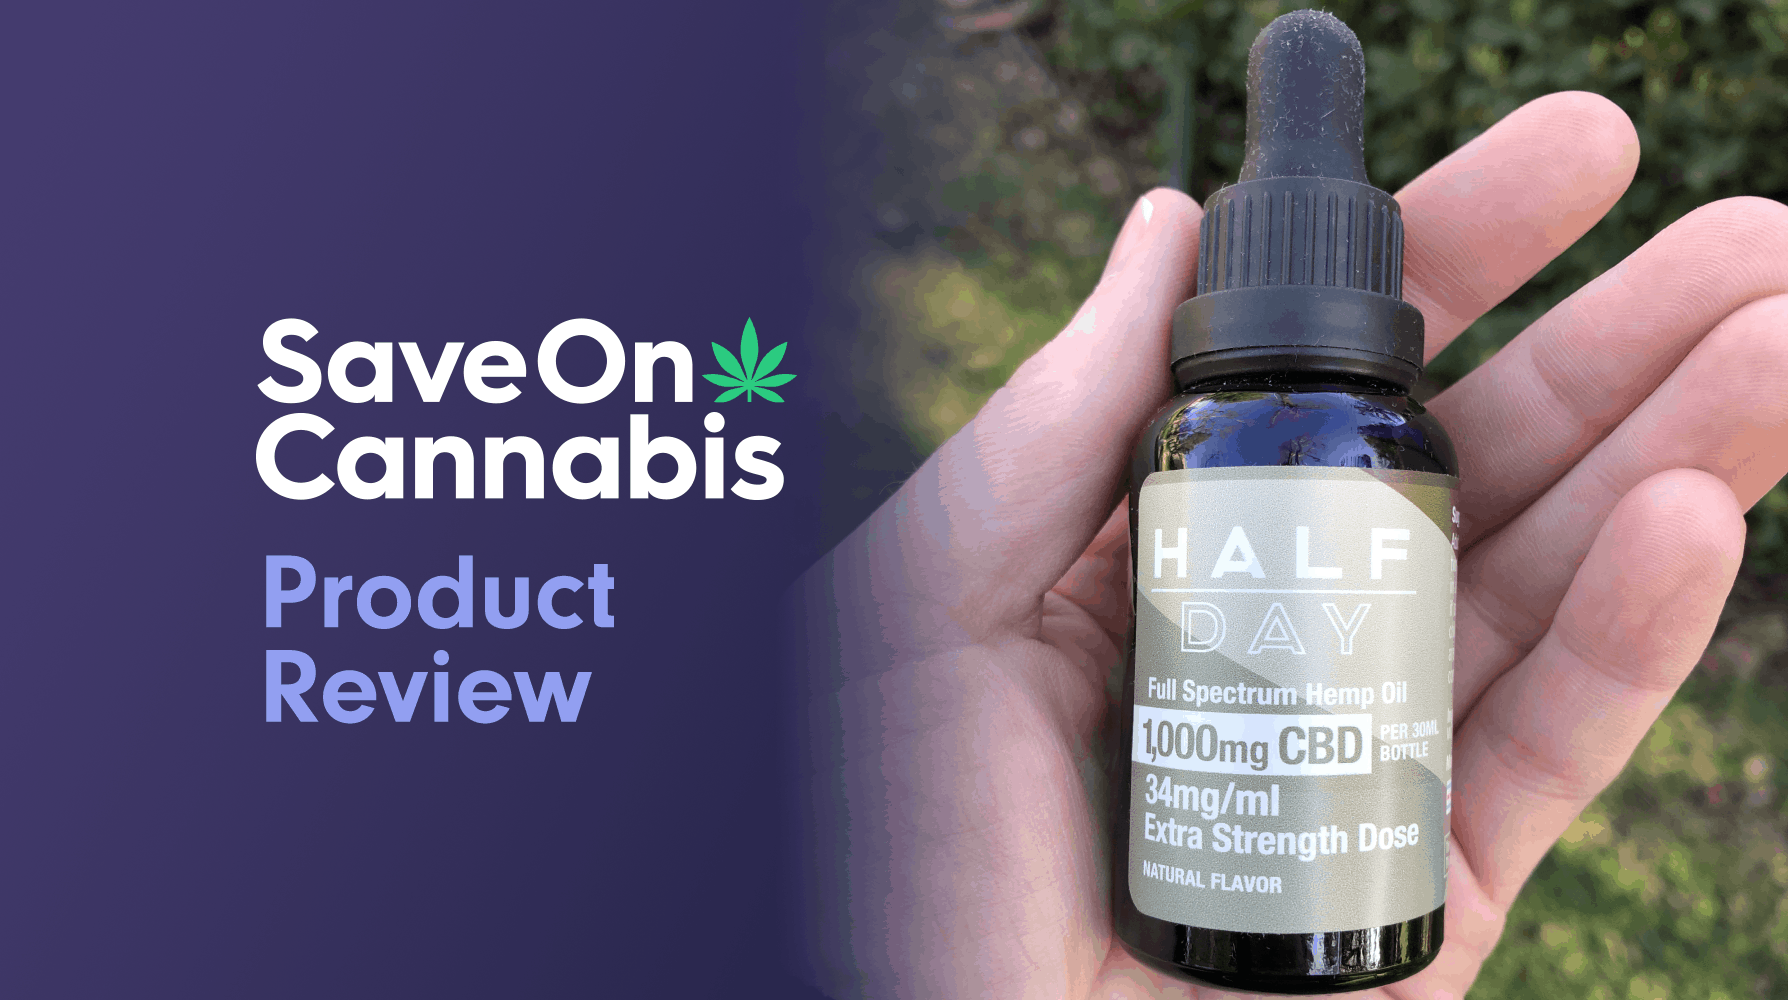 CBD Review: Half Day – Full Spectrum CBD Oil Tincture 1000mg Natural Flavor